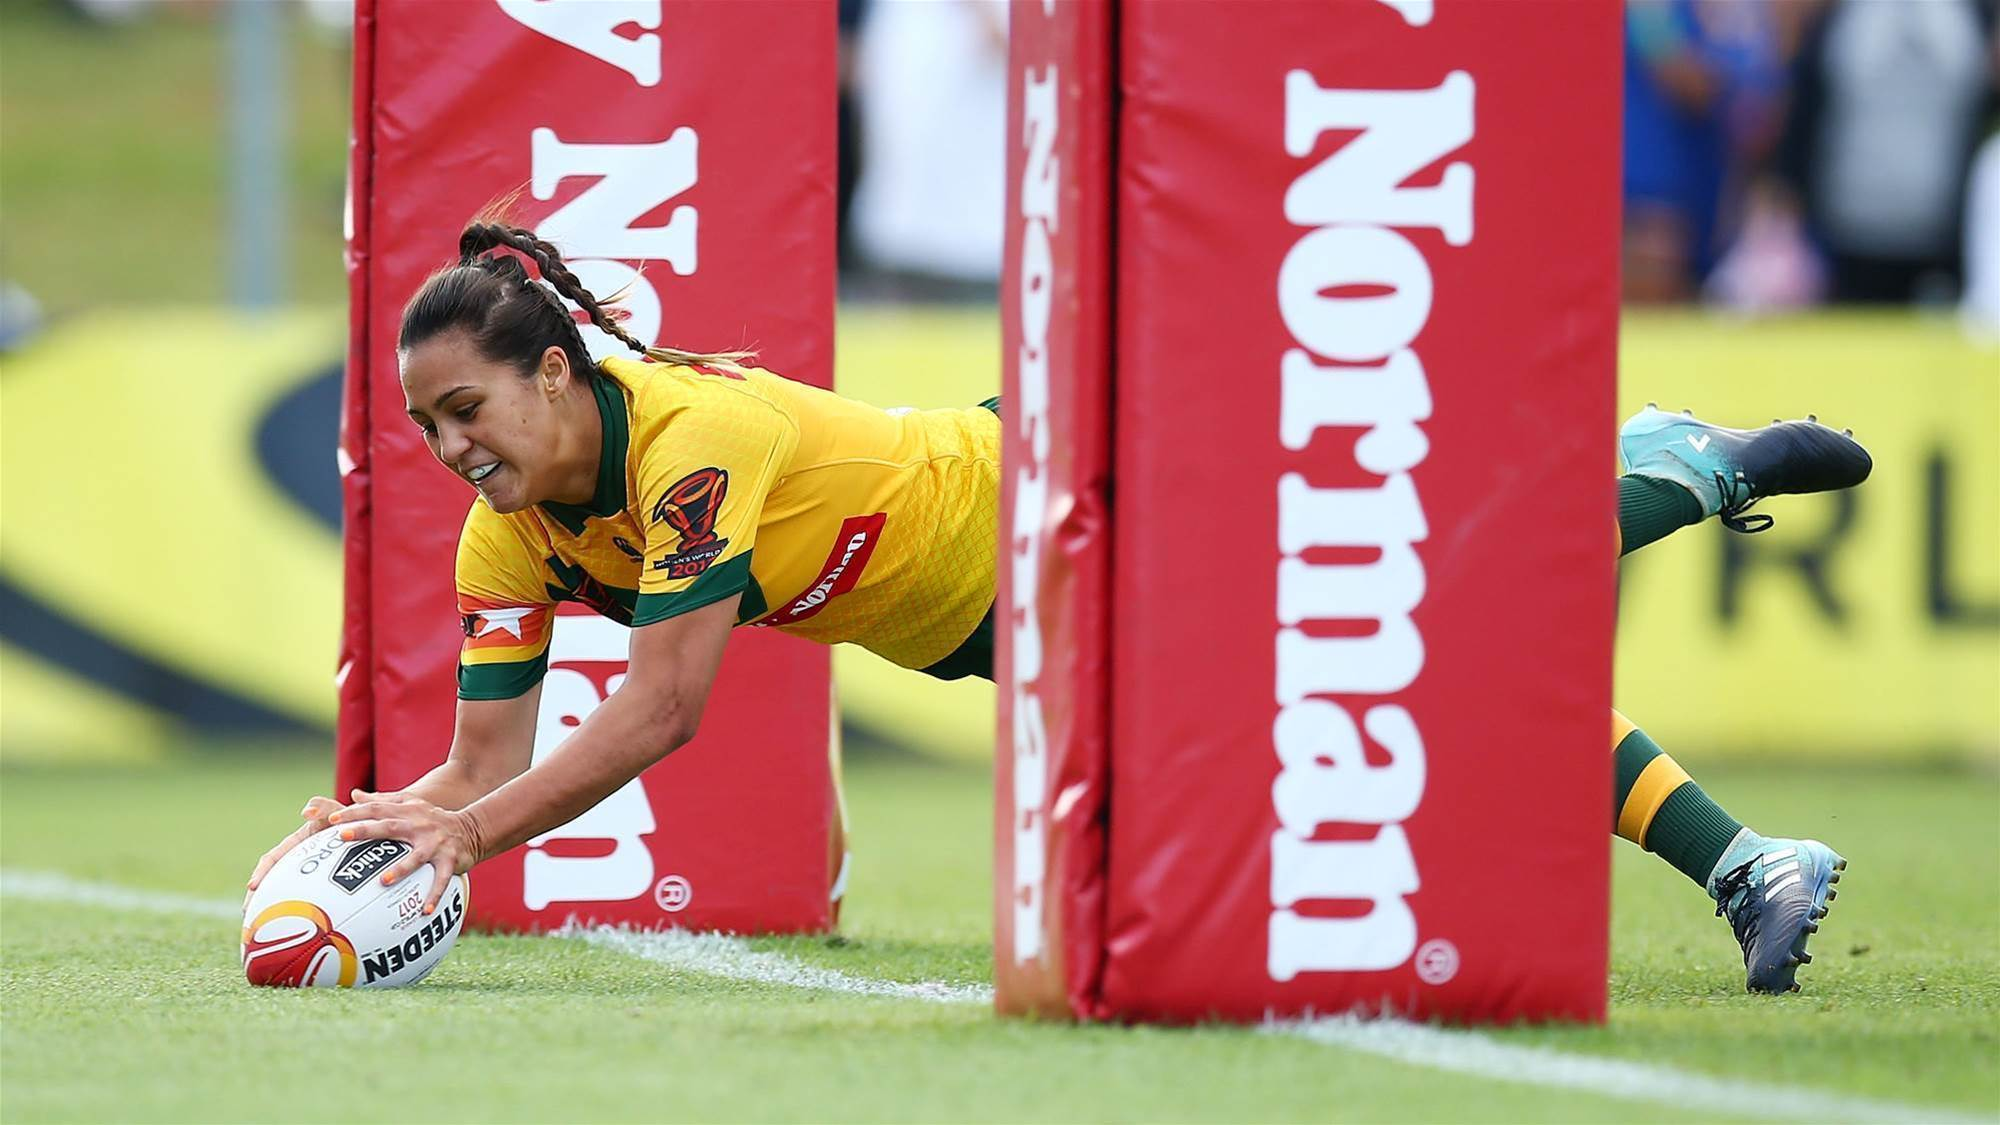 Gold Coast to host Women's National Championship